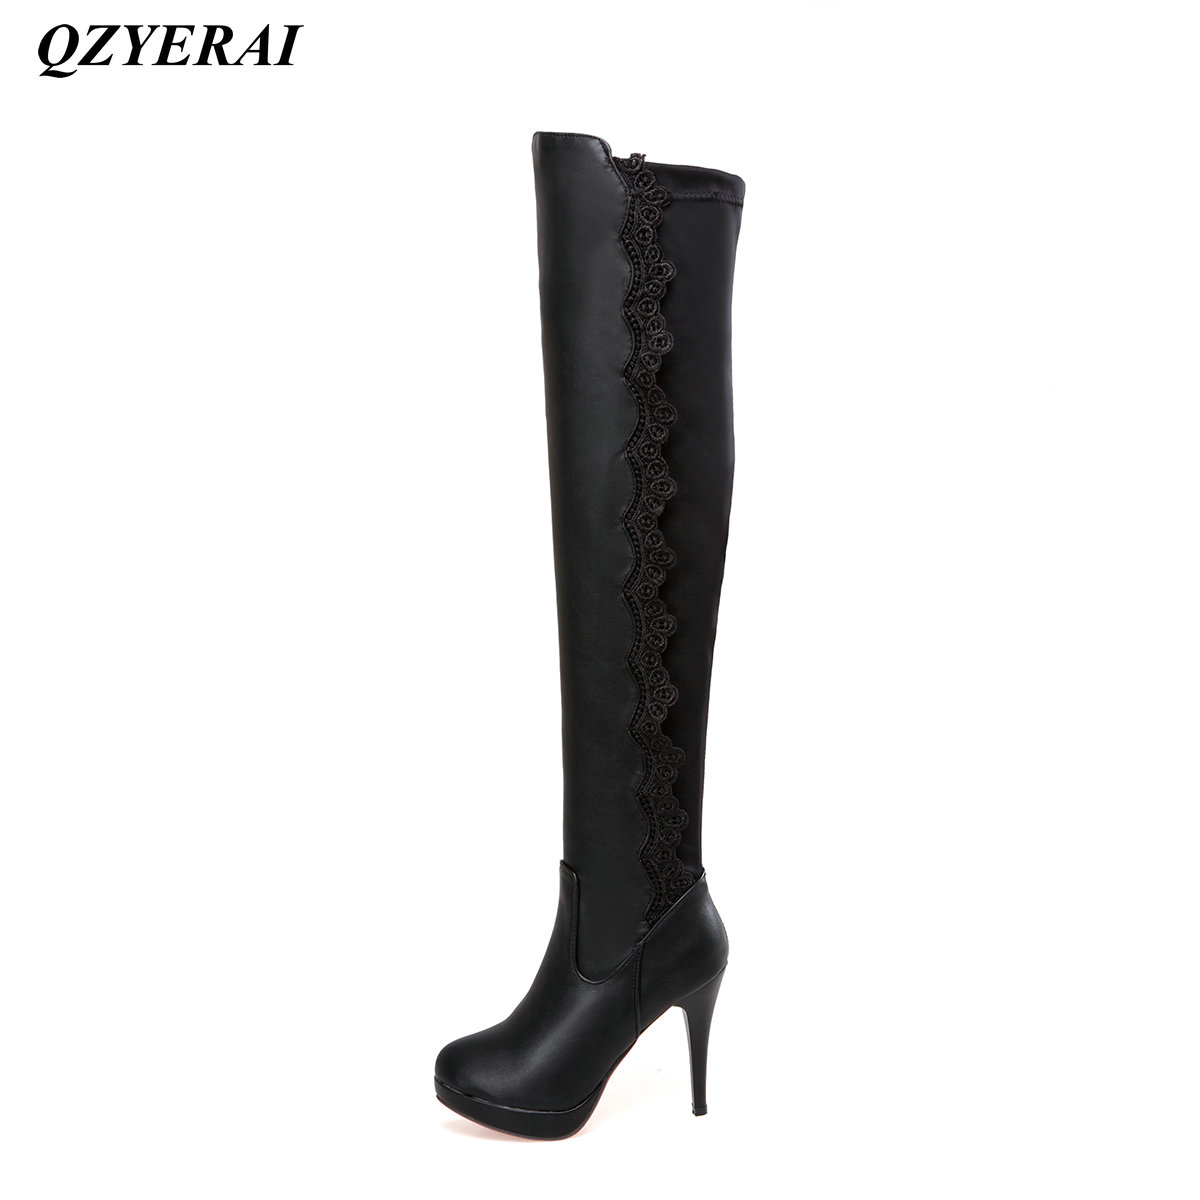 QZYERAI winter to the thigh fine heels womens boots hollowed-out lace fashionable womens shoes womens boots